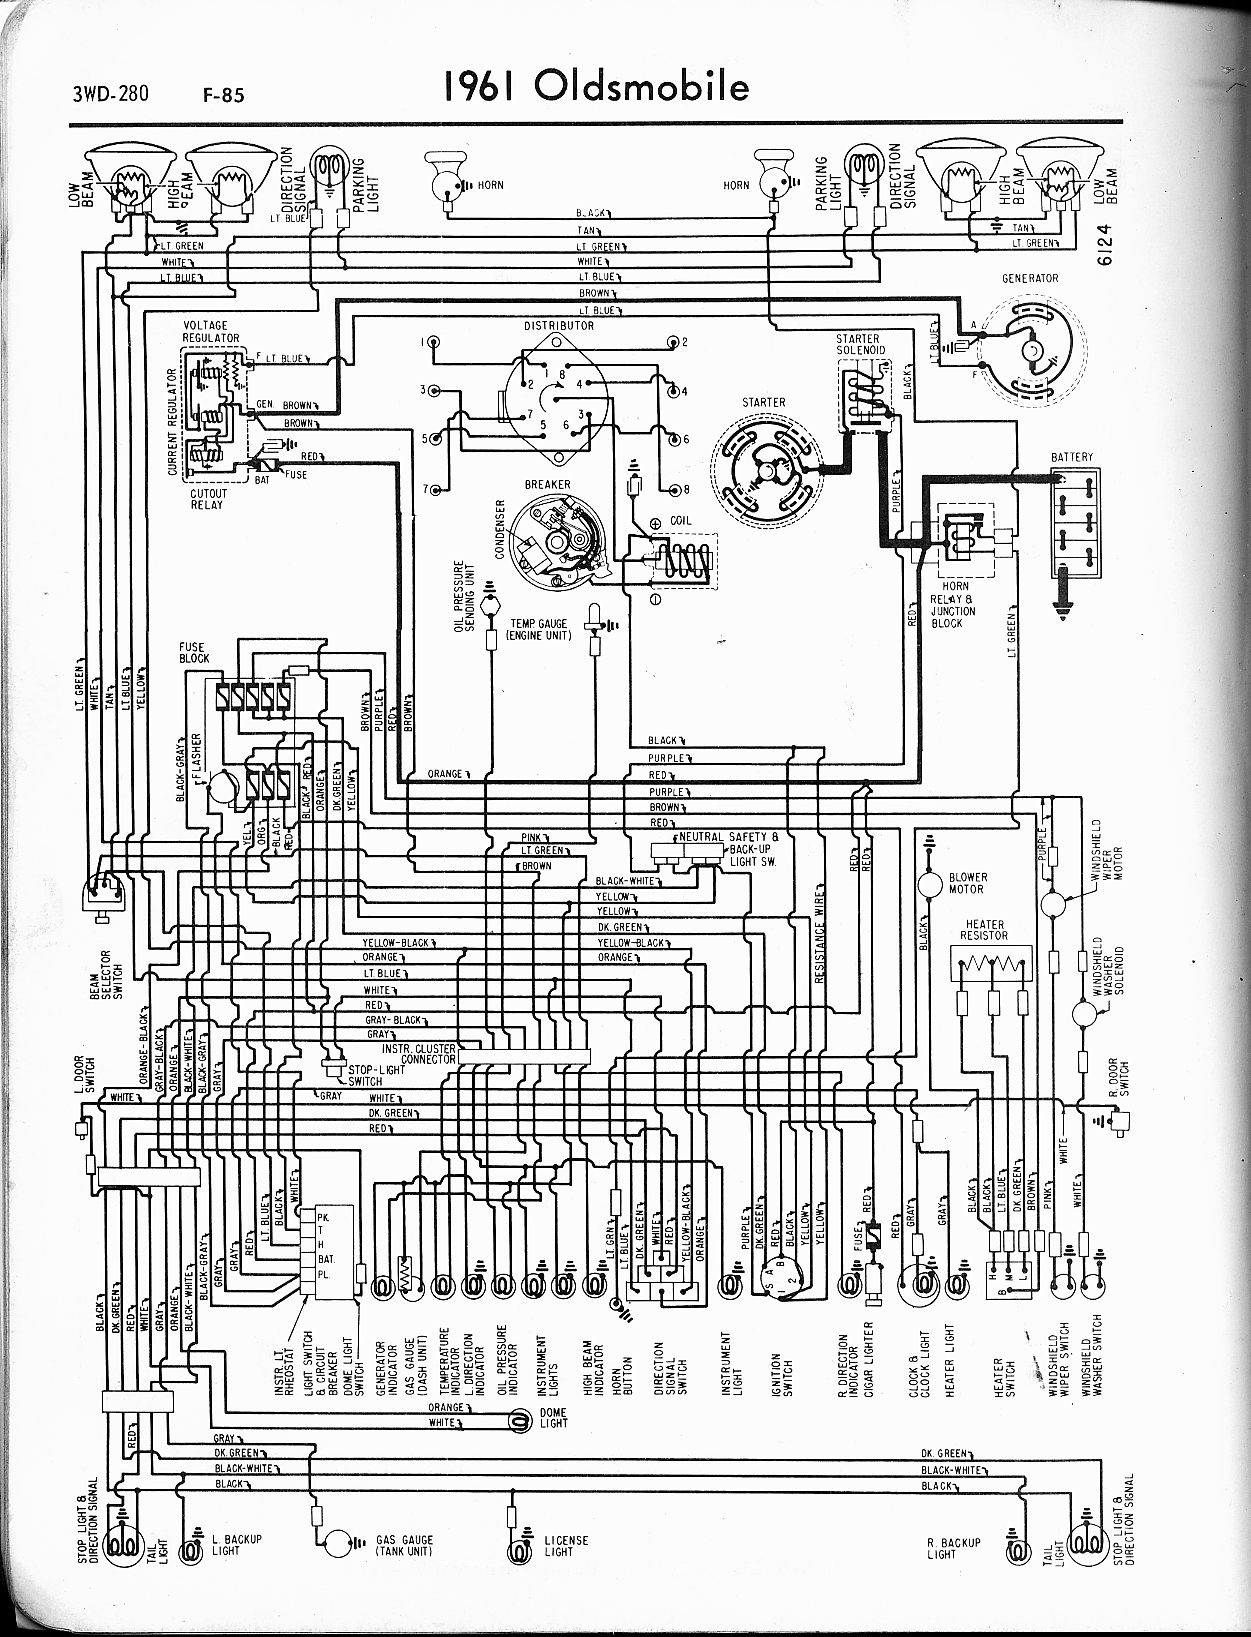 MWire5765 280 oldsmobile wiring diagram oldsmobile wiring diagrams instruction Wiring Schematics for Johnson Outboards at reclaimingppi.co